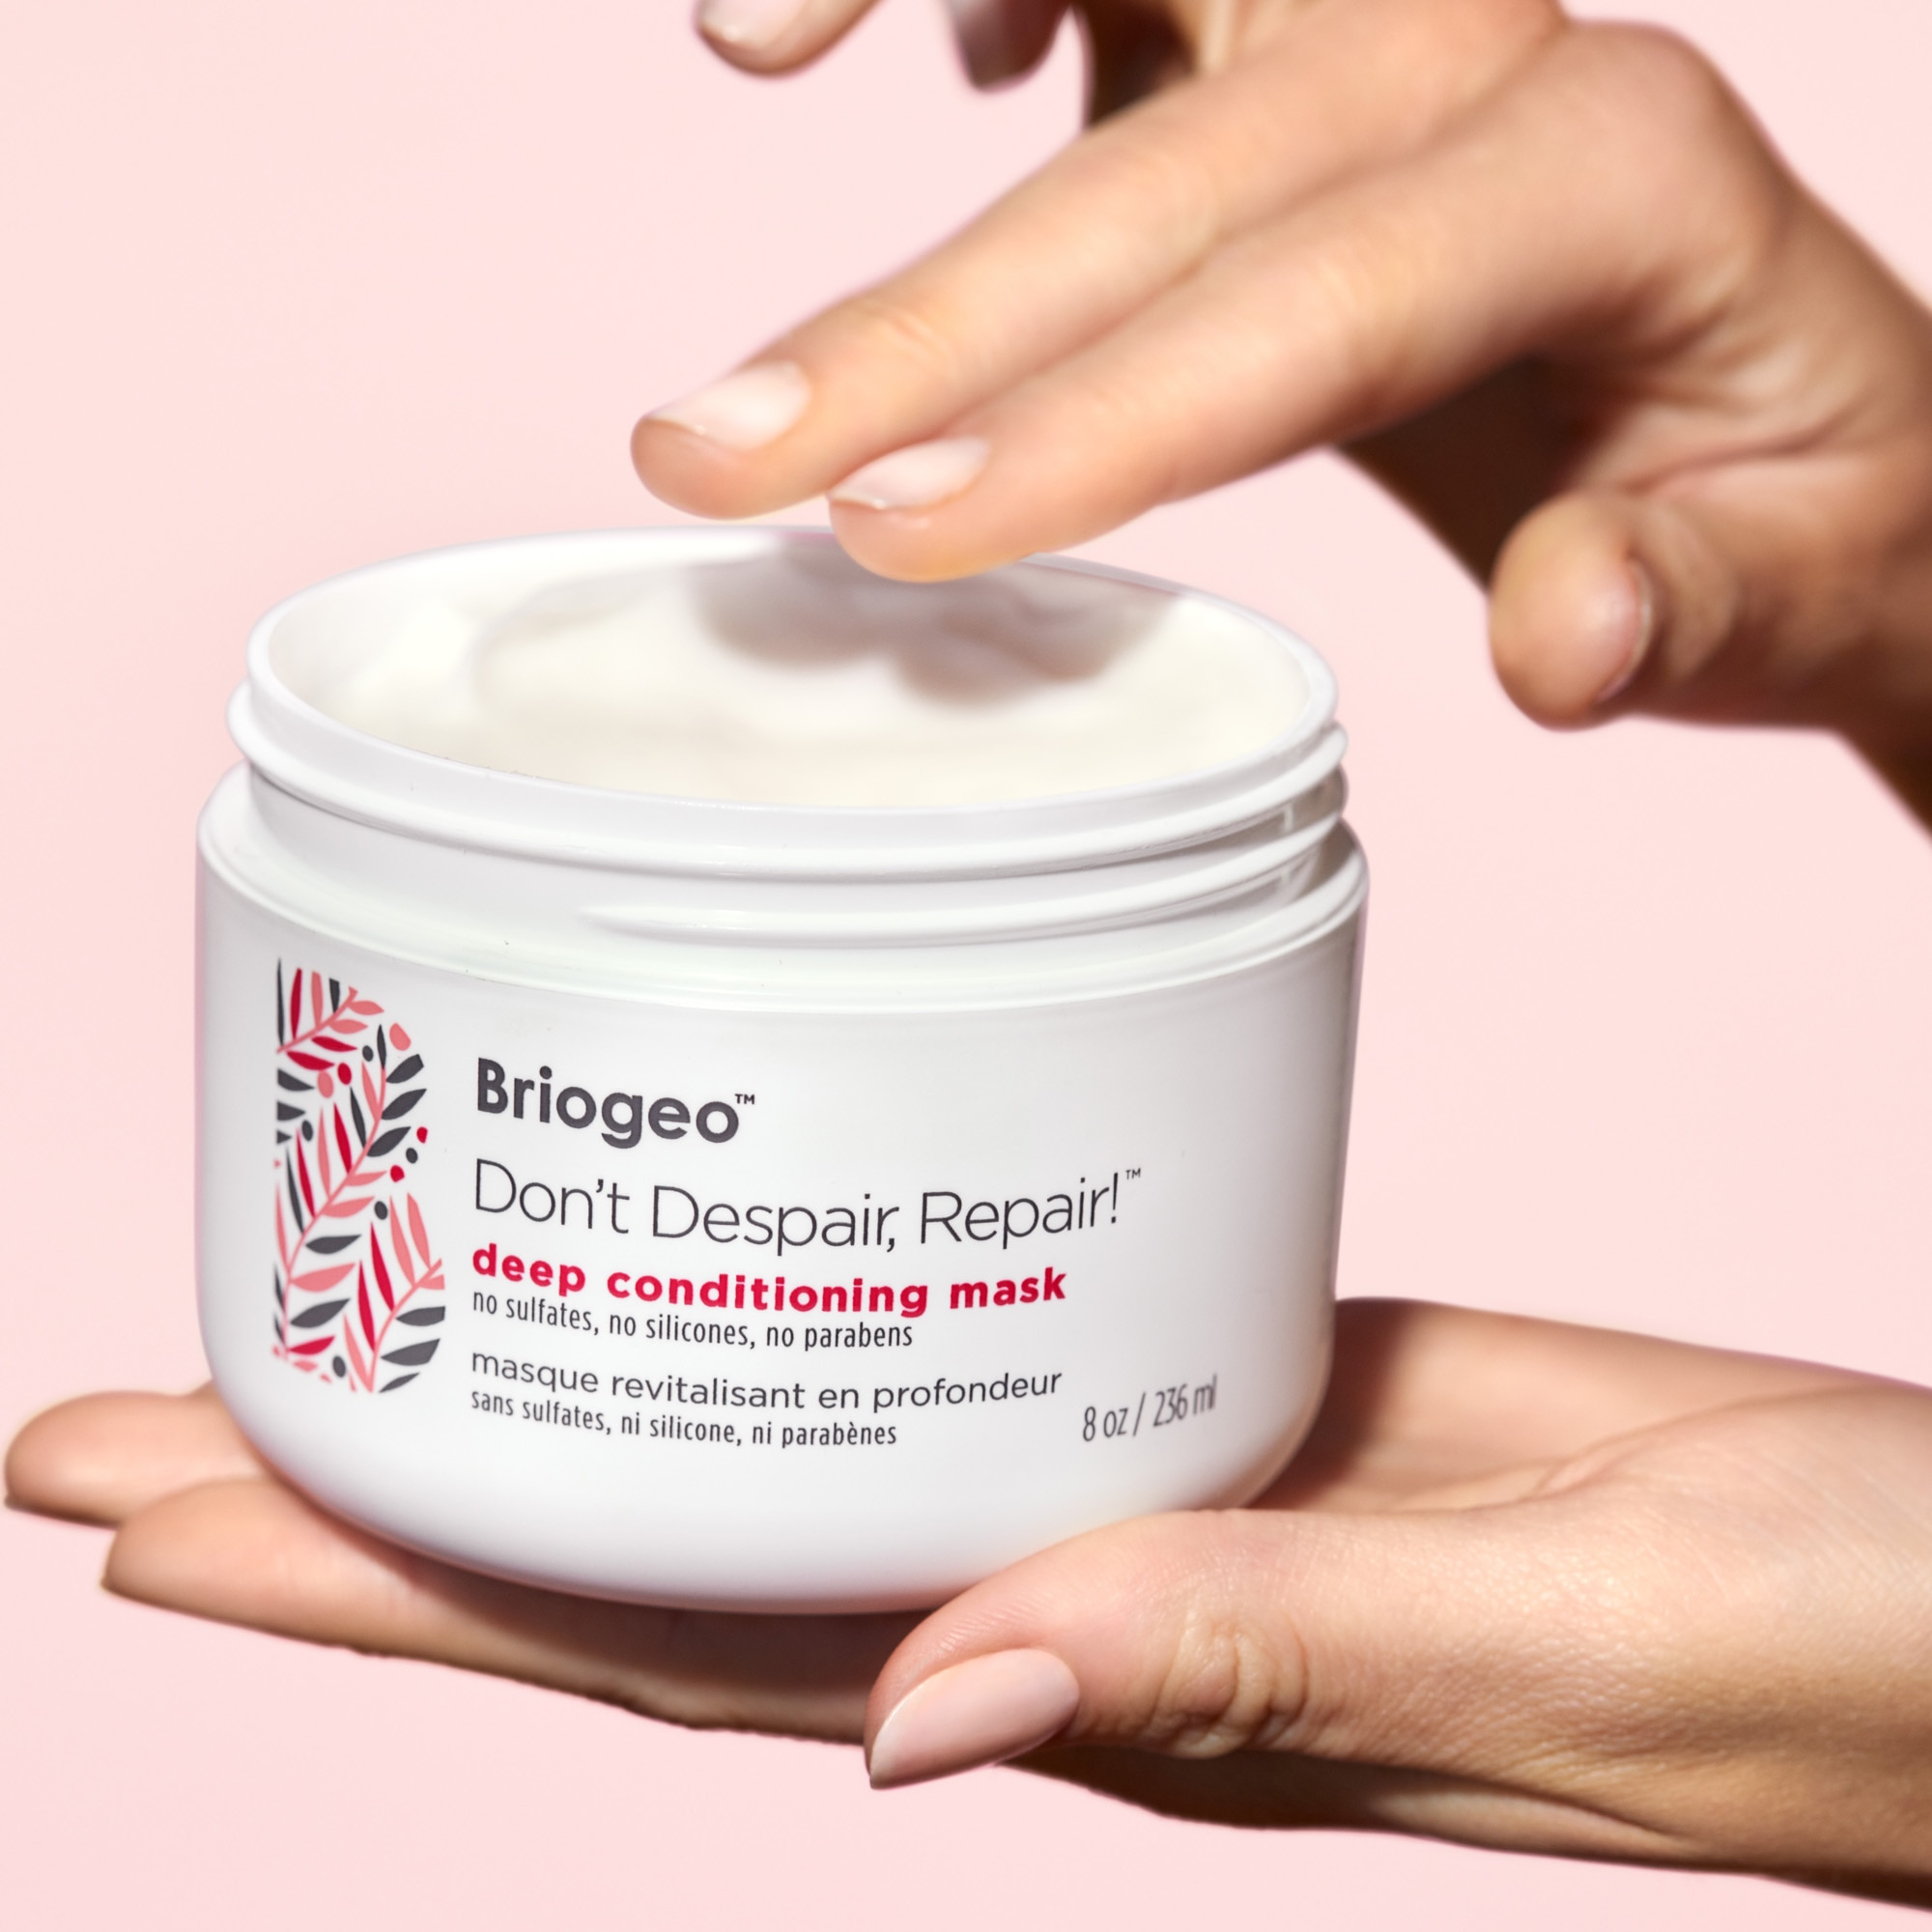 DON'T DESPAIR, REPAIR!™ DEEP CONDITIONING MASK 8OZ (MÁSCARA DE ACONDICIONAMIENTO PROFUNDA)